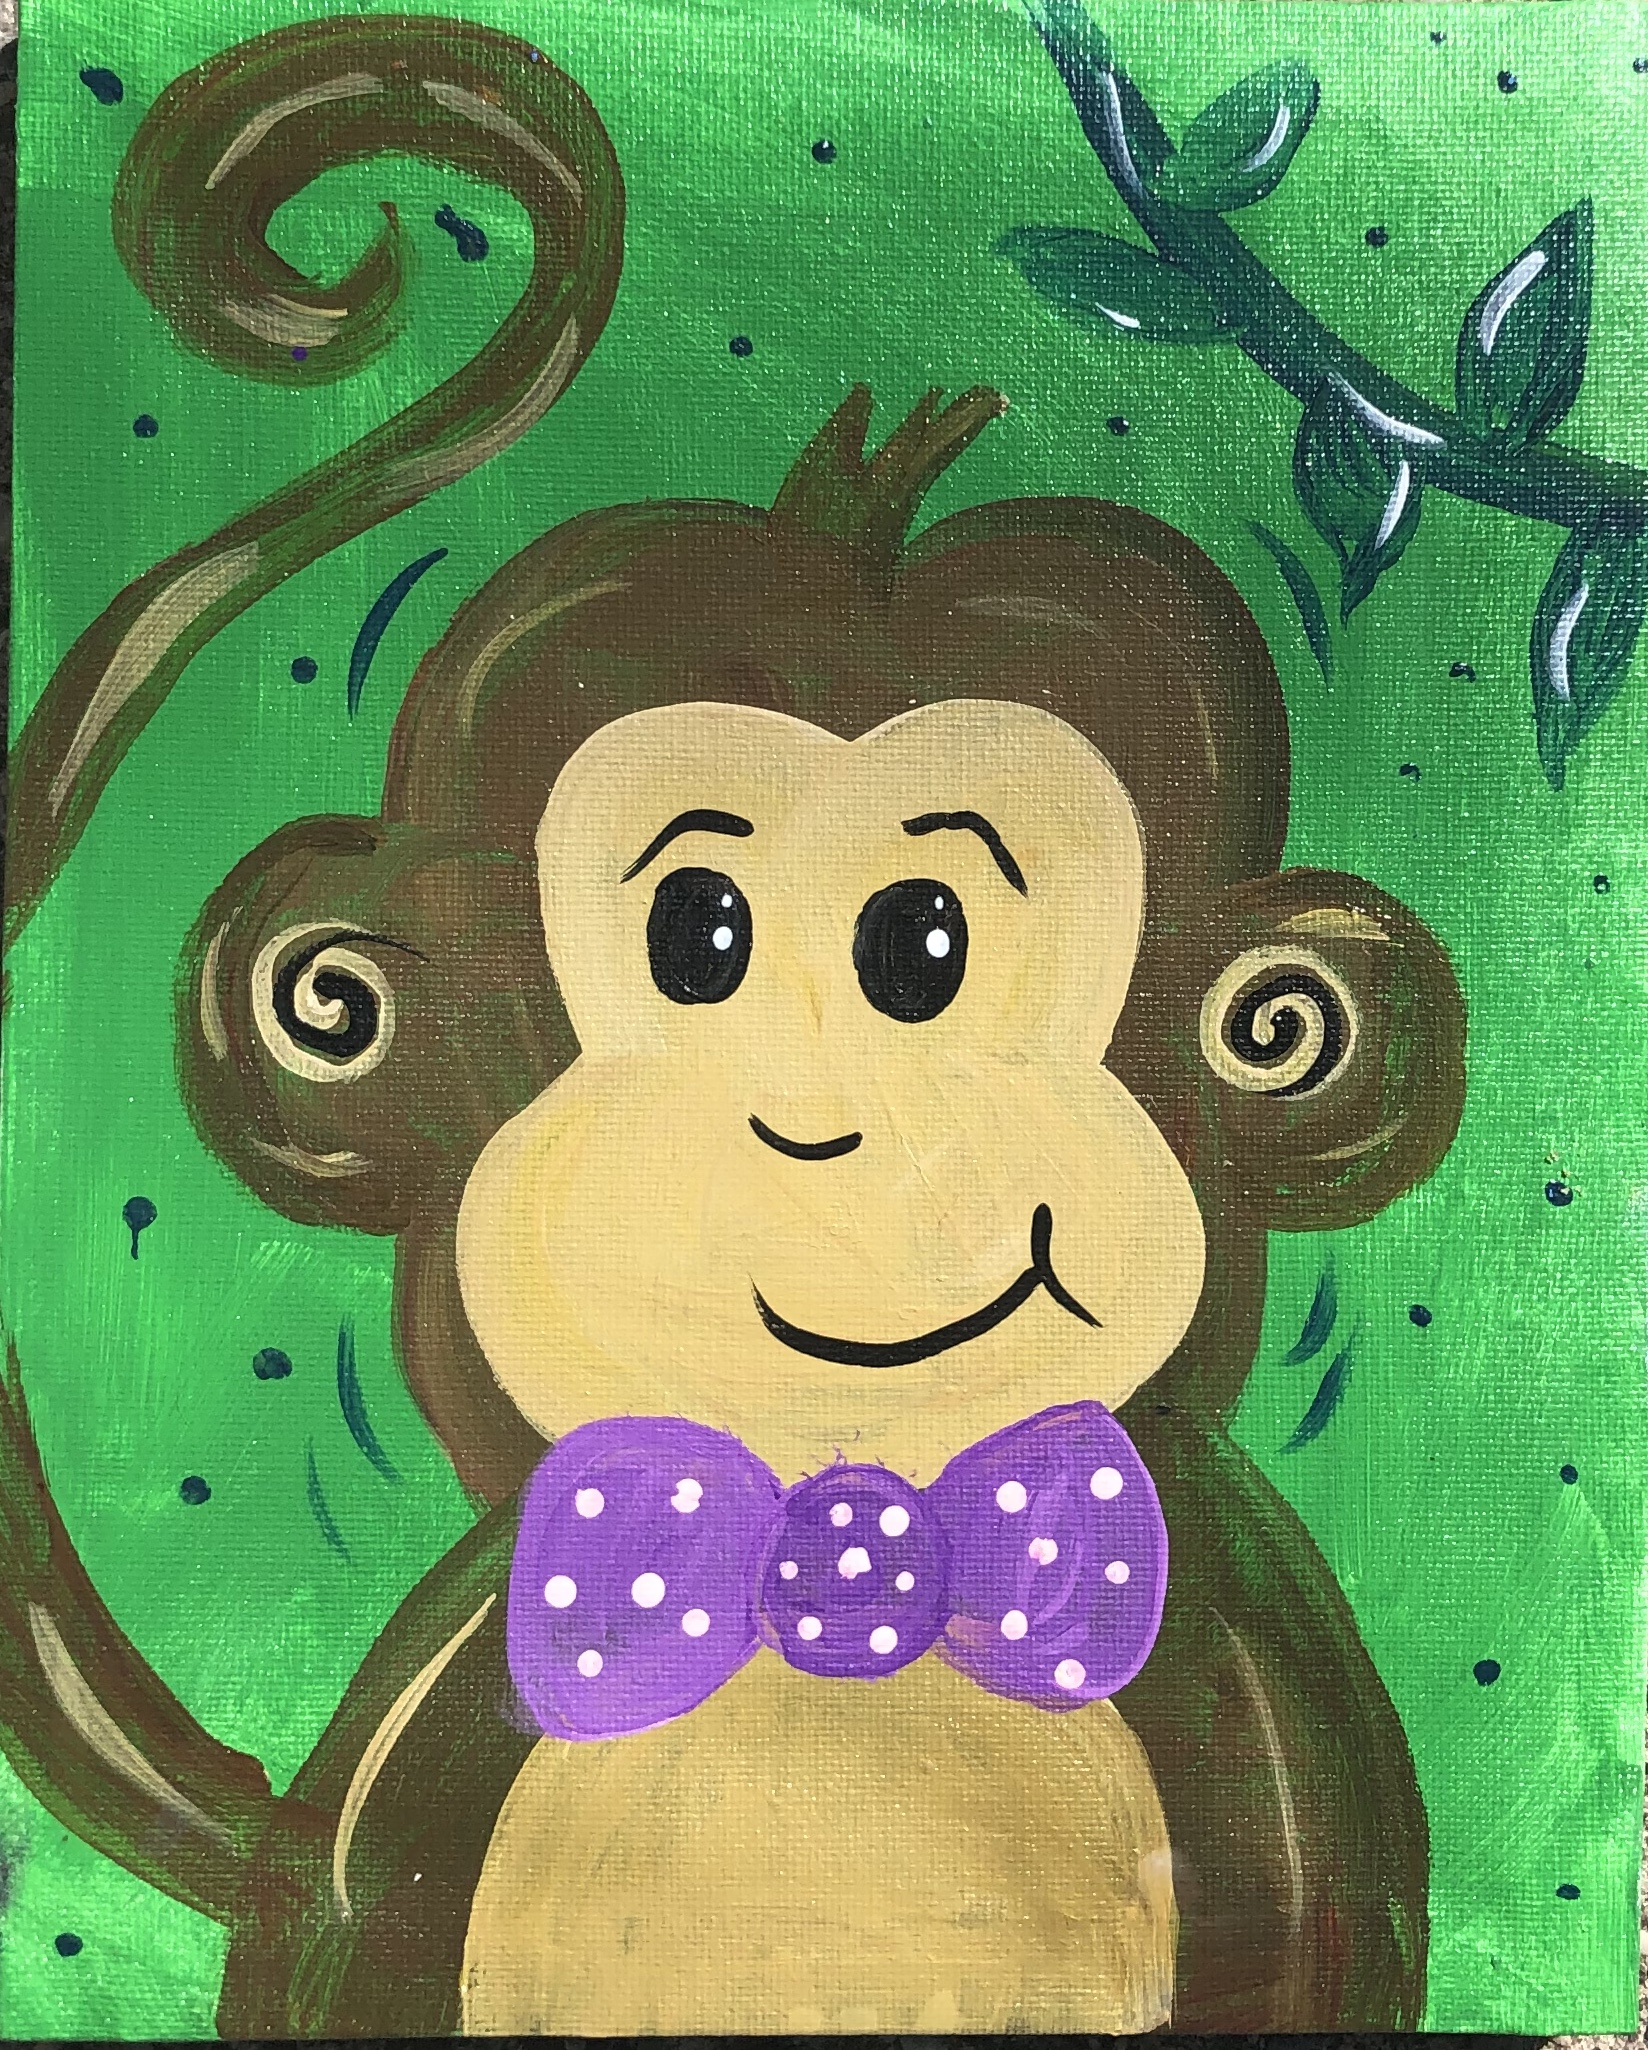 A Monkey business experience project by Yaymaker